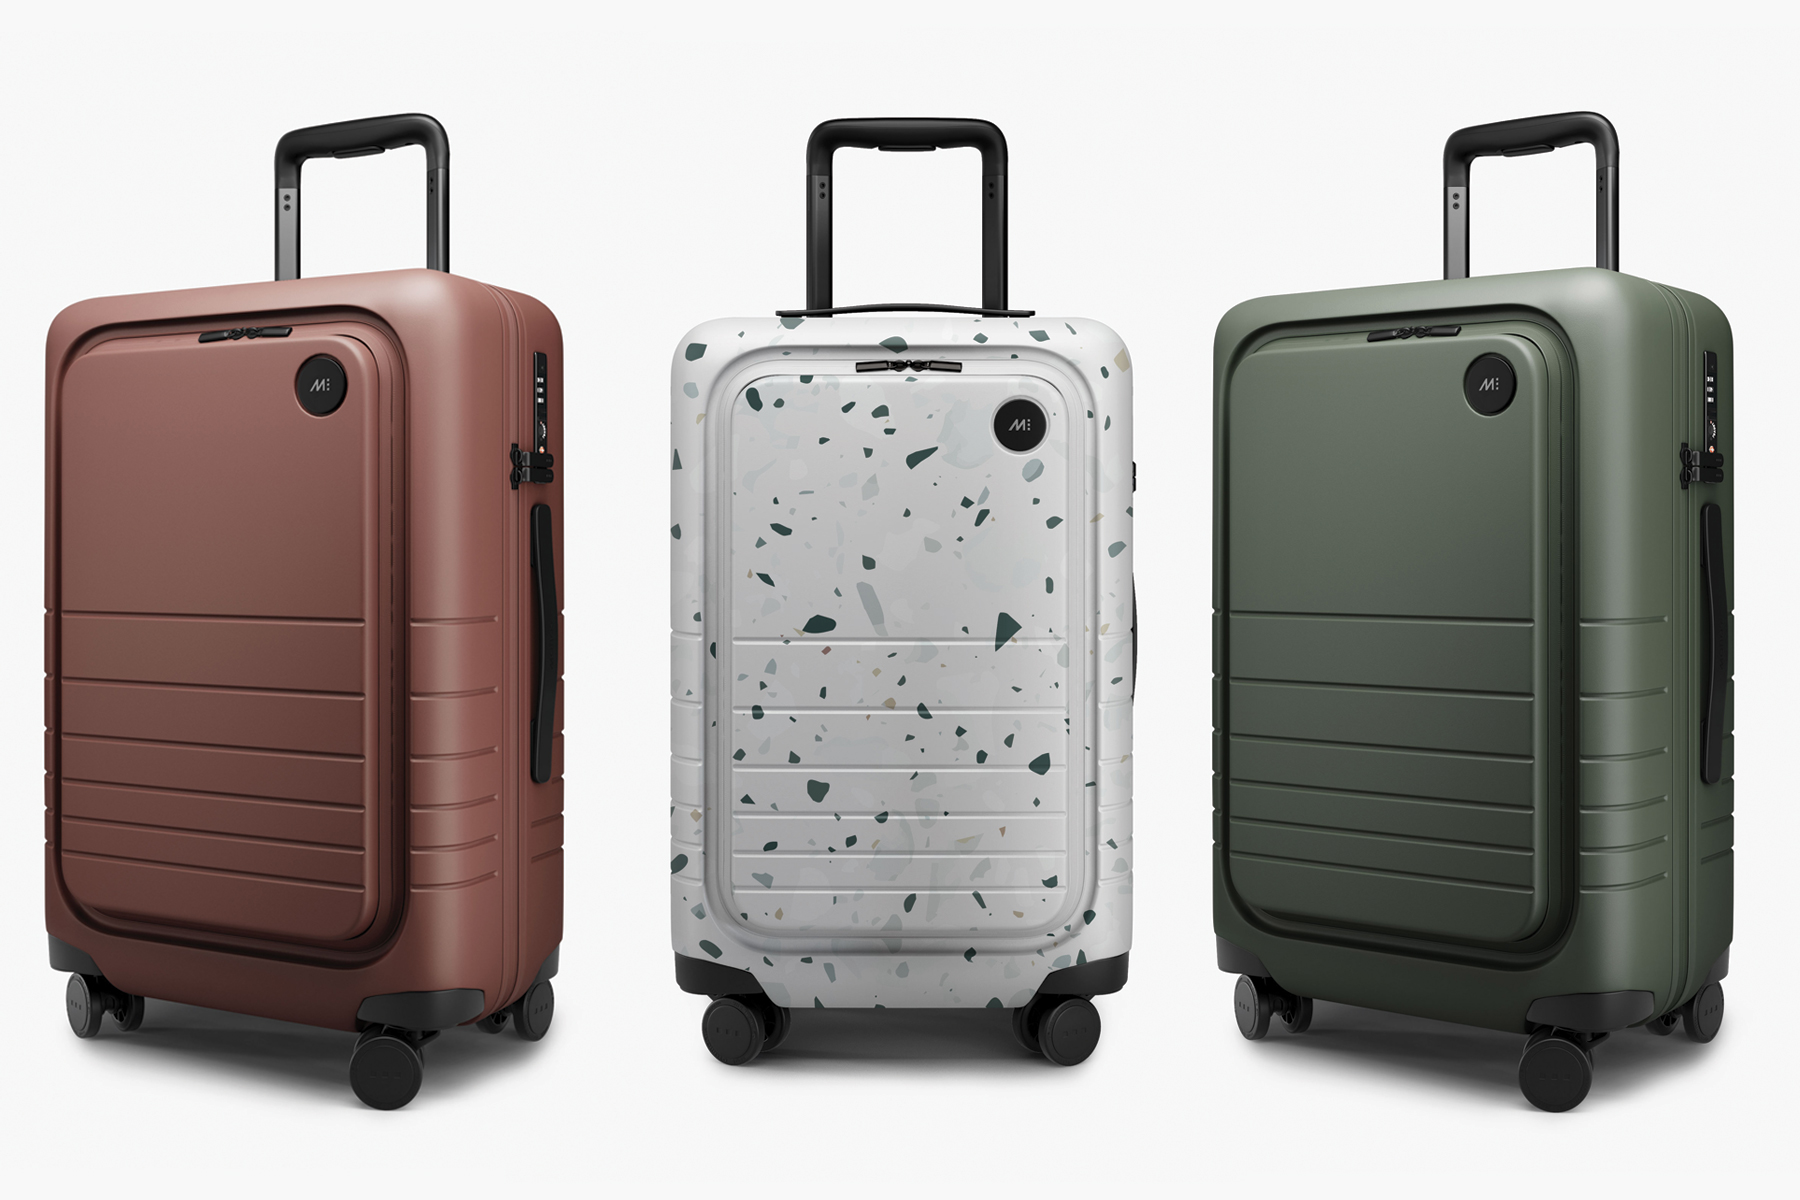 Monos Carry On Pro Hardside suitcases in terracotta, terrazzo and olive green